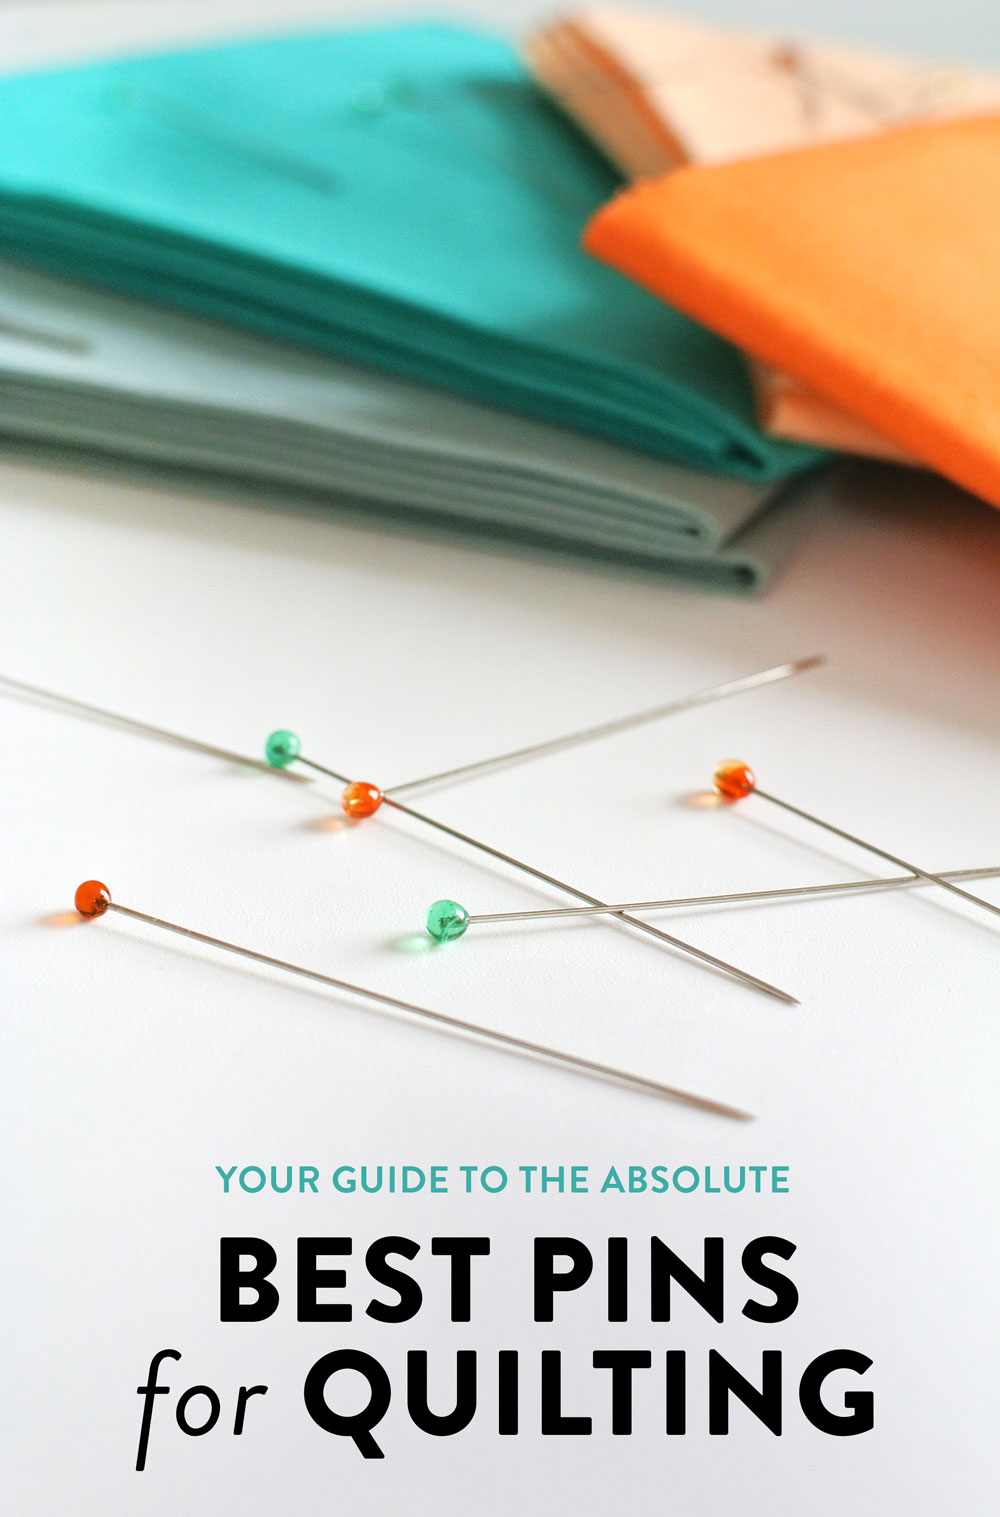 Your Guide to the Absolute Best Pins for Quilting | Suzy Quilts https://suzyquilts.com/best-pins-for-quilting